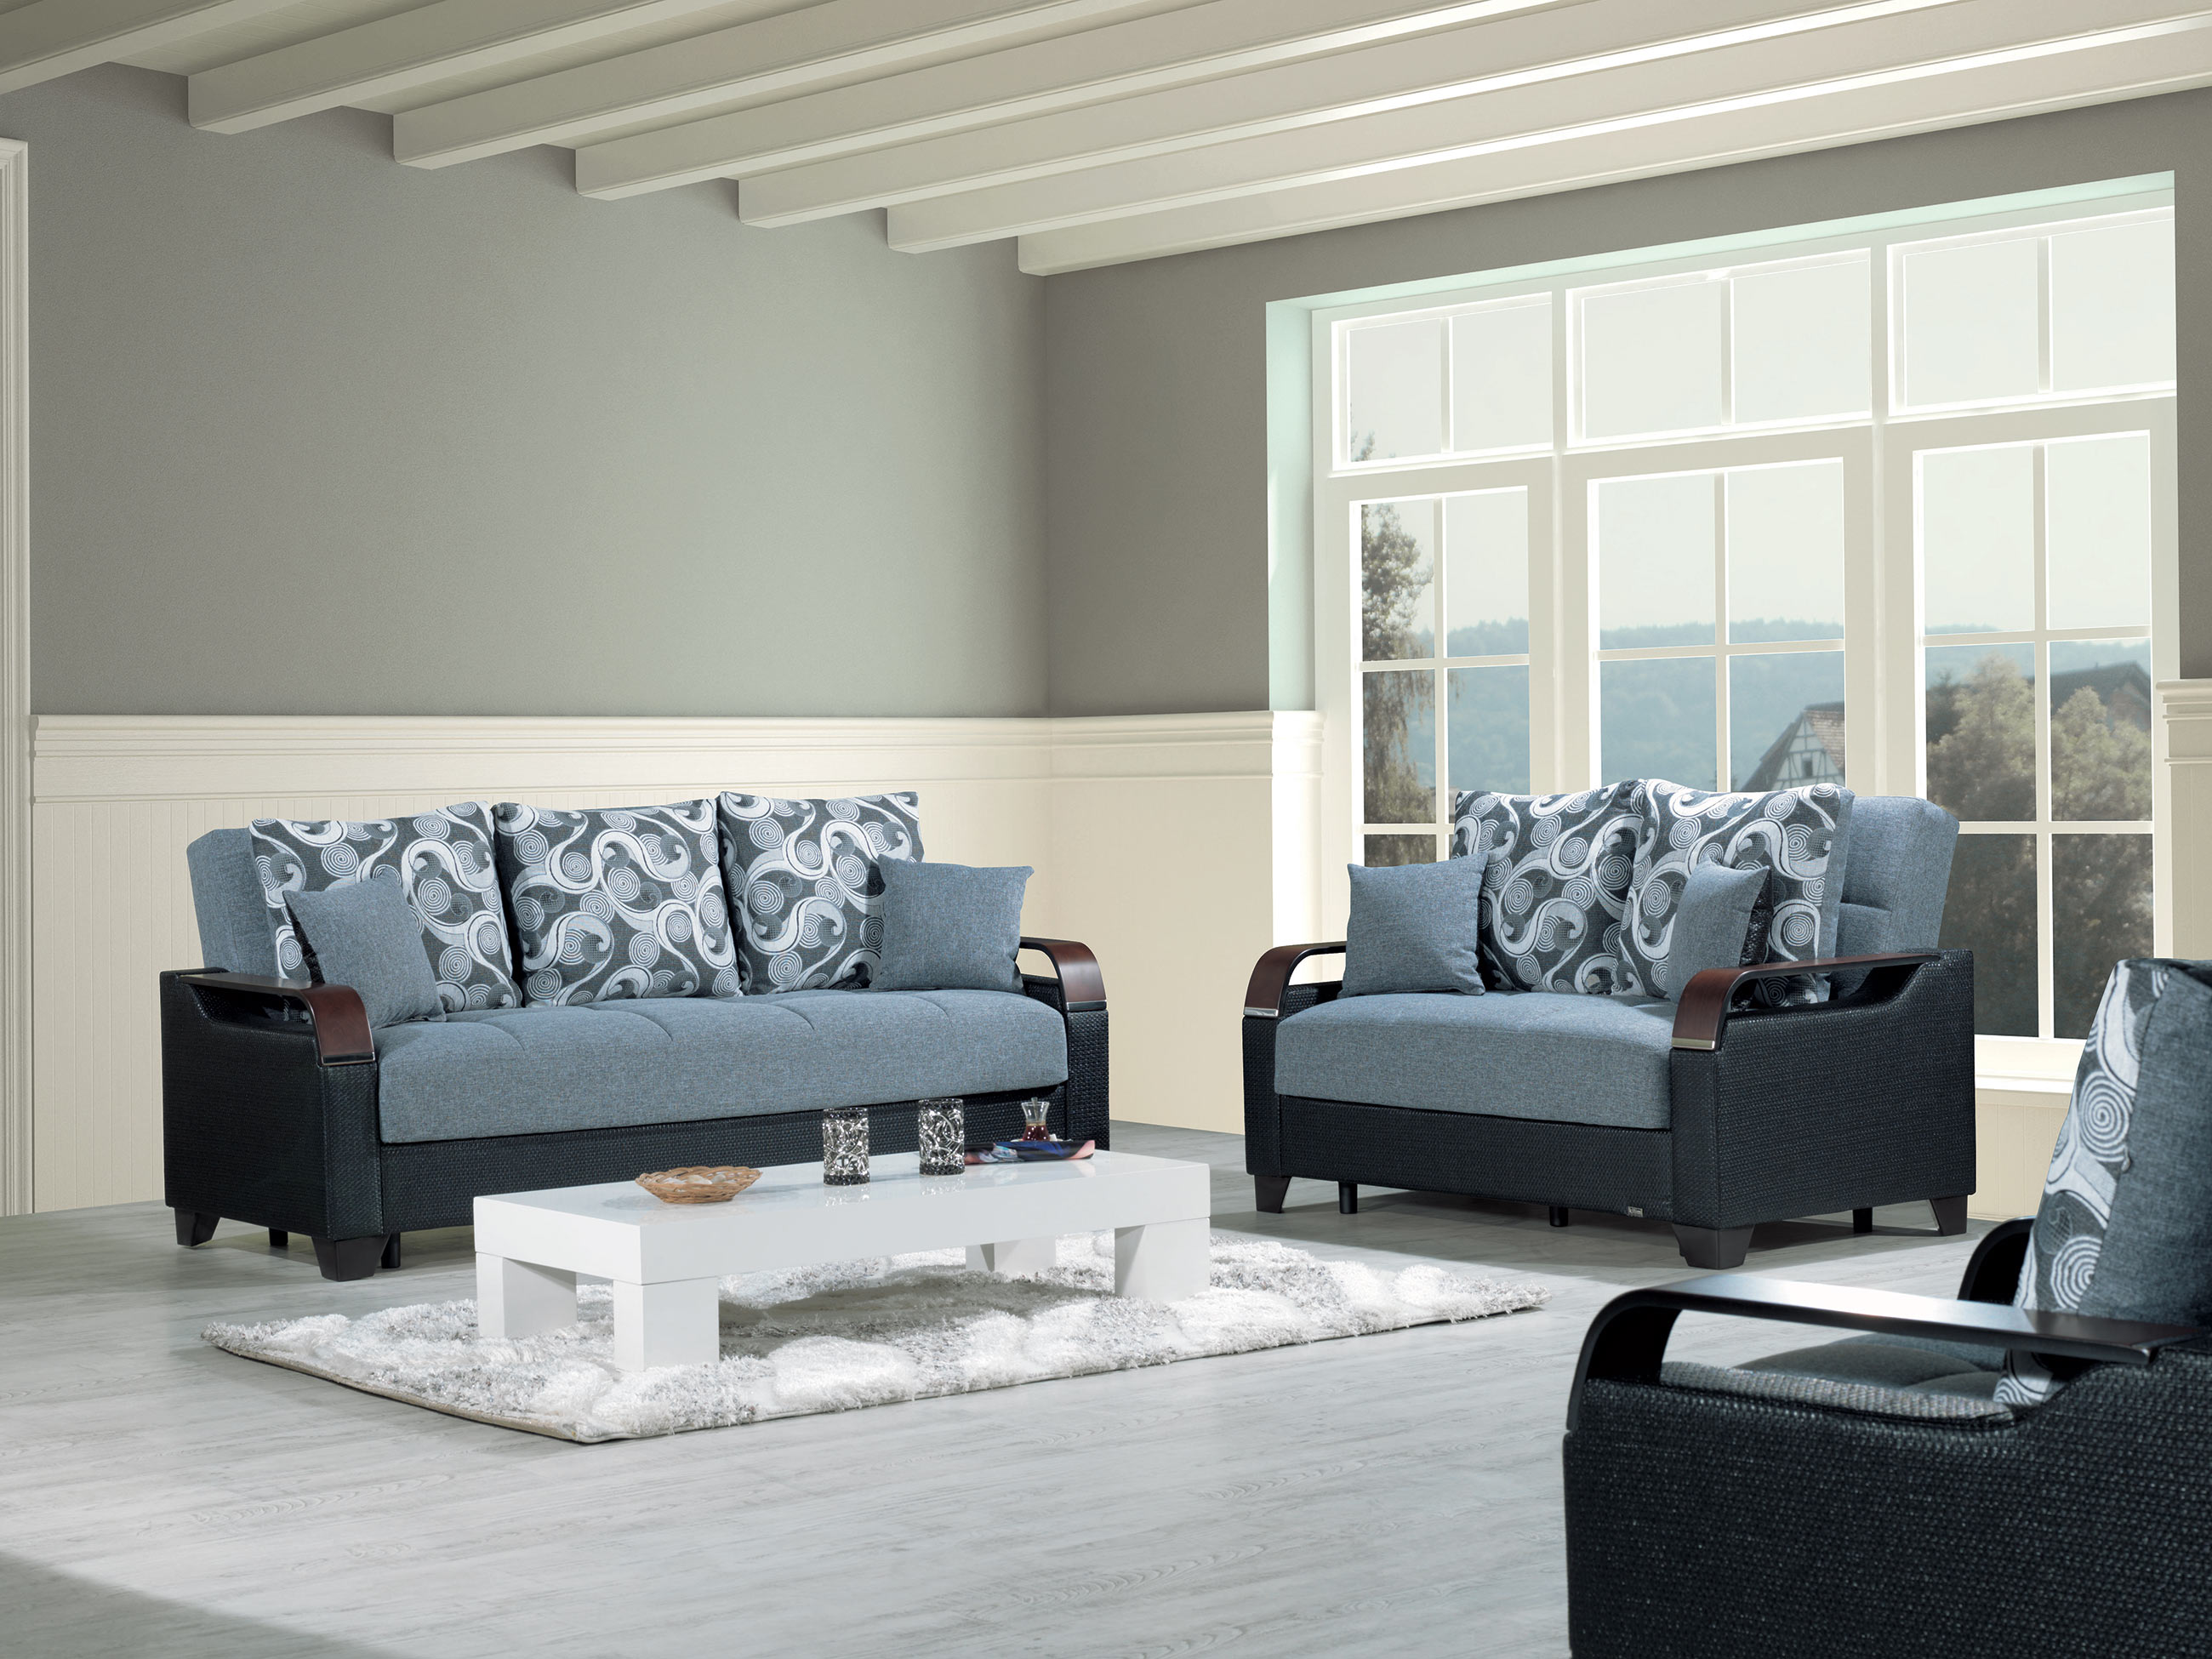 Marvelous La Reina Moon Gray Convertible Loveseat By Casamode Gmtry Best Dining Table And Chair Ideas Images Gmtryco